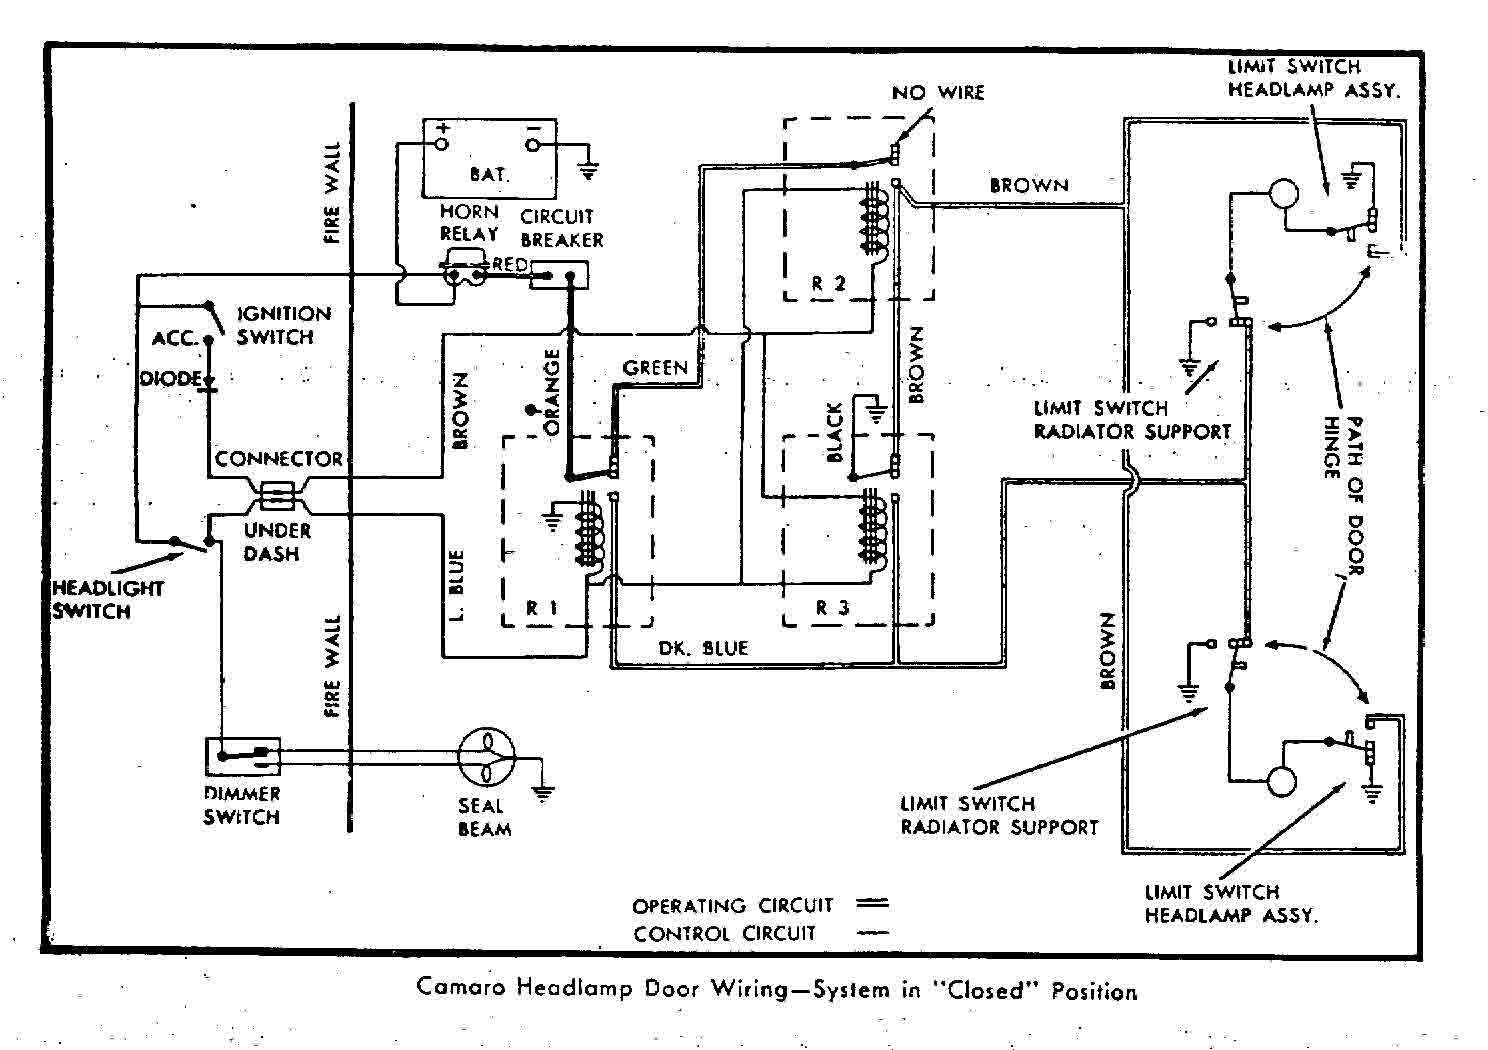 1968 camaro wiper wiring diagram wiring diagram progresif